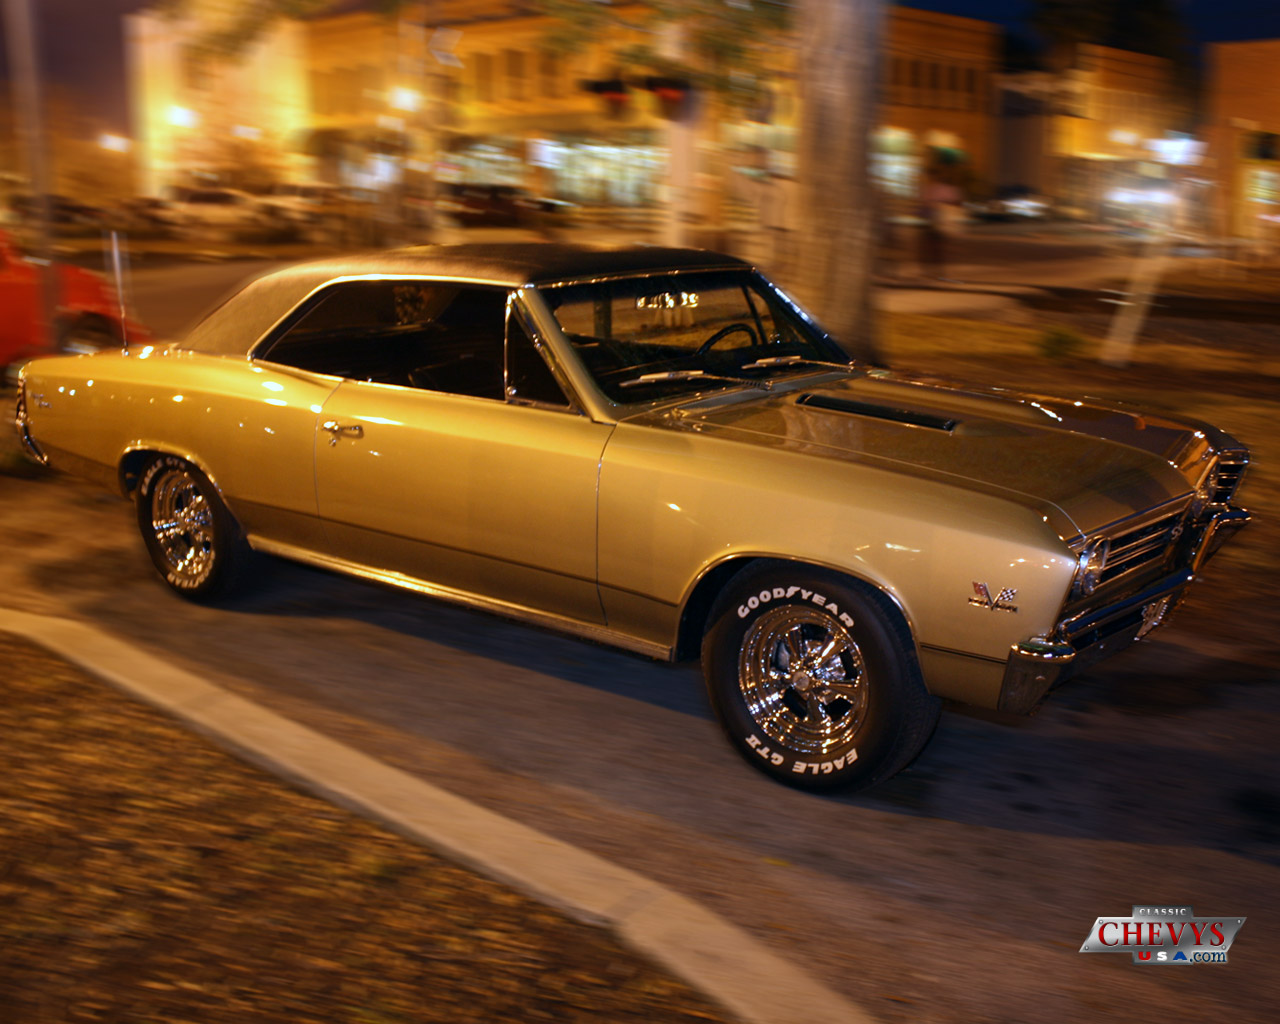 67 chevelle ss with blower wallpaper 1280x1024